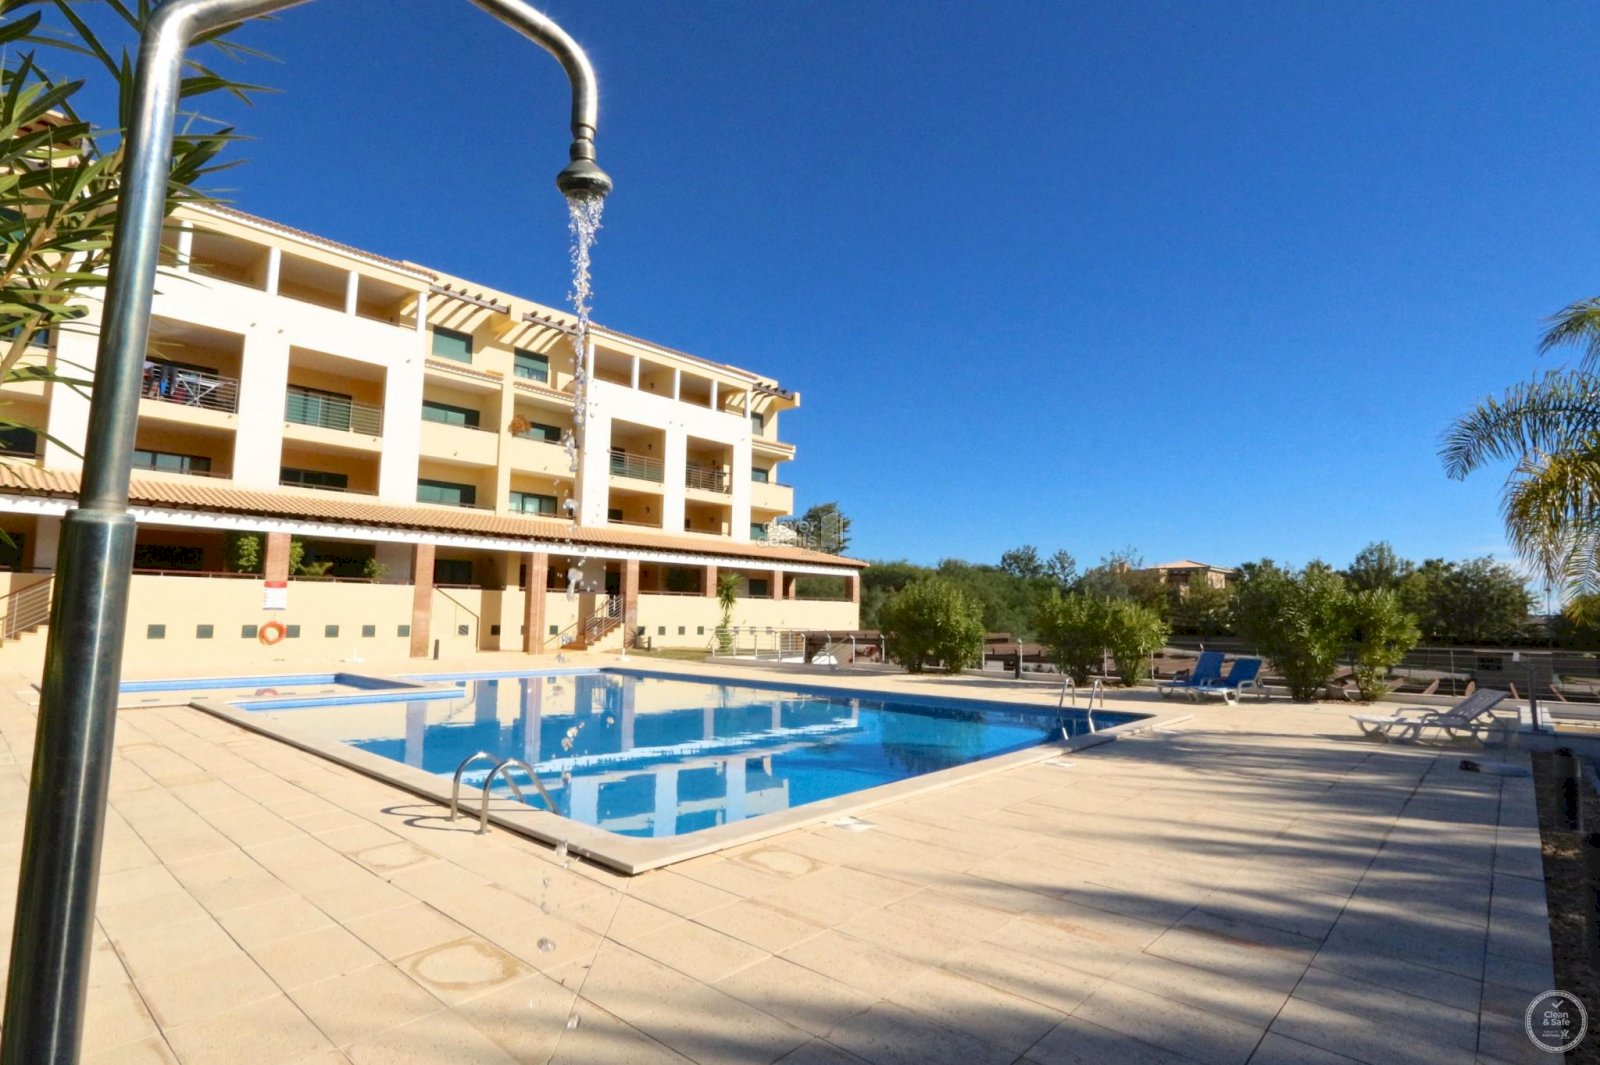 Vacation apartments Vilamoura: Stunning 2 bedroom apartment in a small complex 5 minutes drive from the centre of Vilamoura, the marina and the beaches.